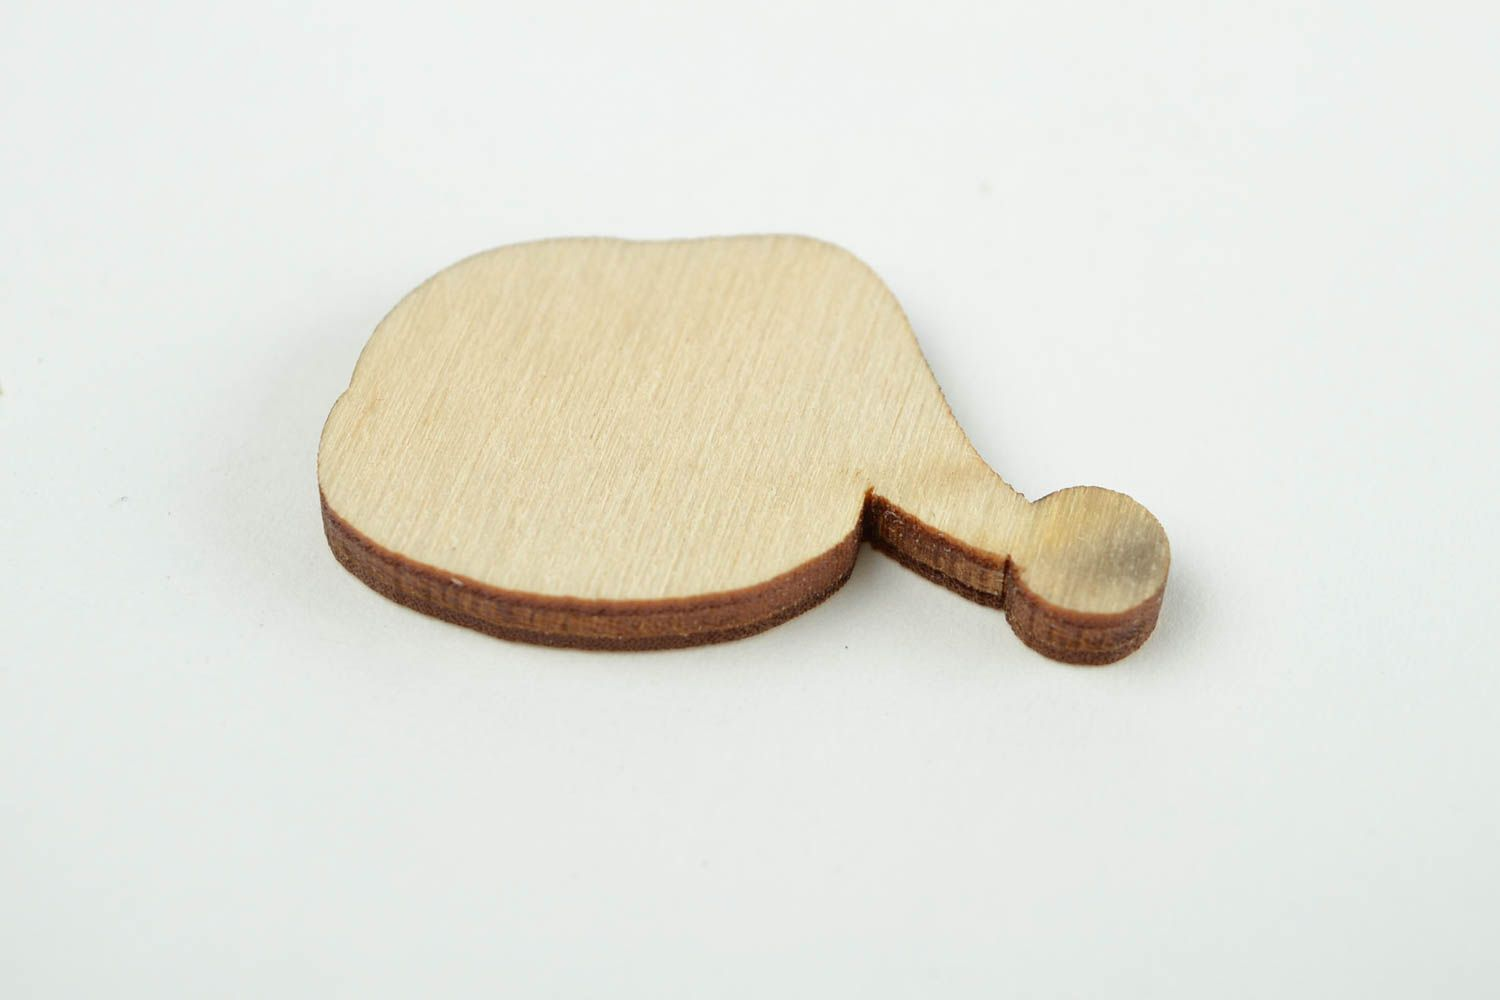 Unusual handmade plywood blank wood craft cute blanks for painting gifts for kid photo 5